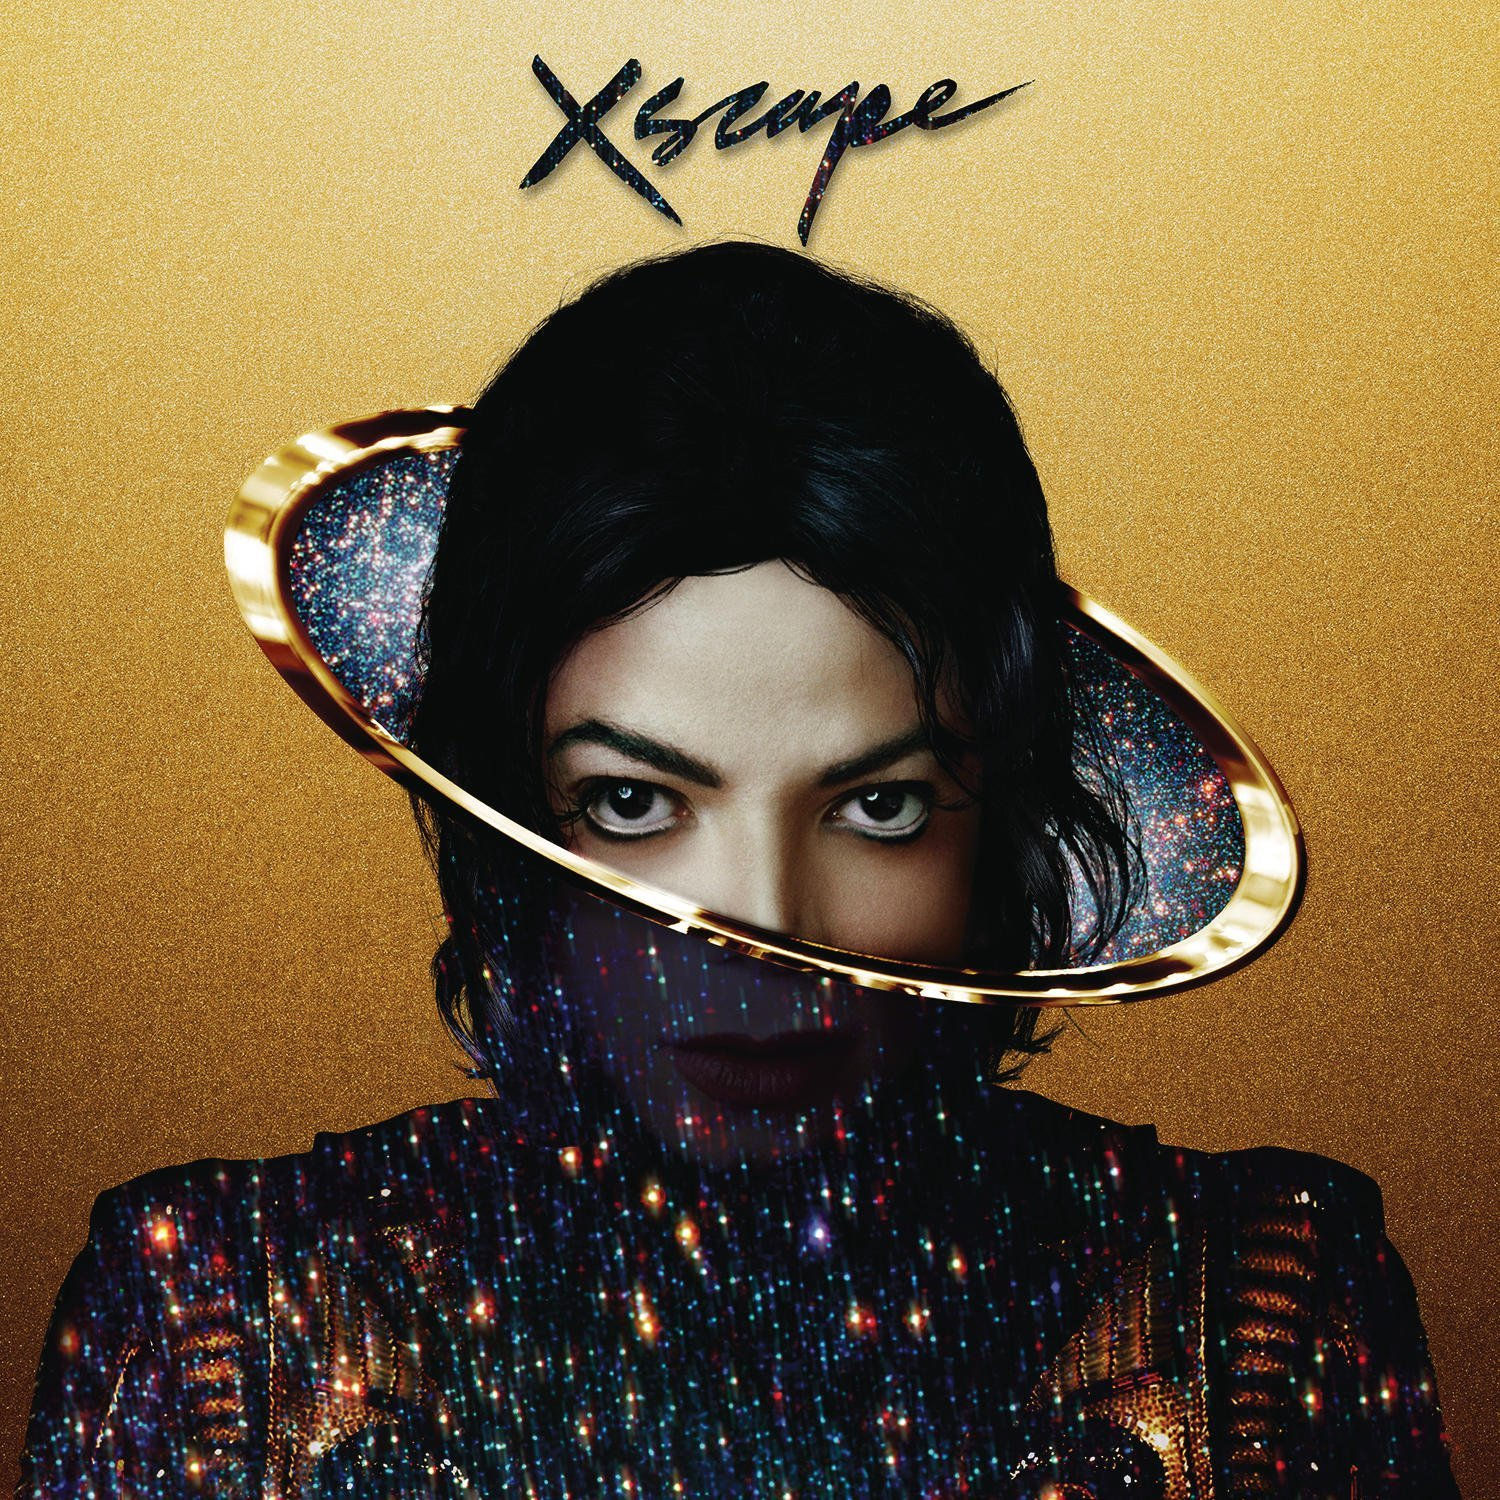 Playstorm Review: Michael Jackson – Xscape (2014)